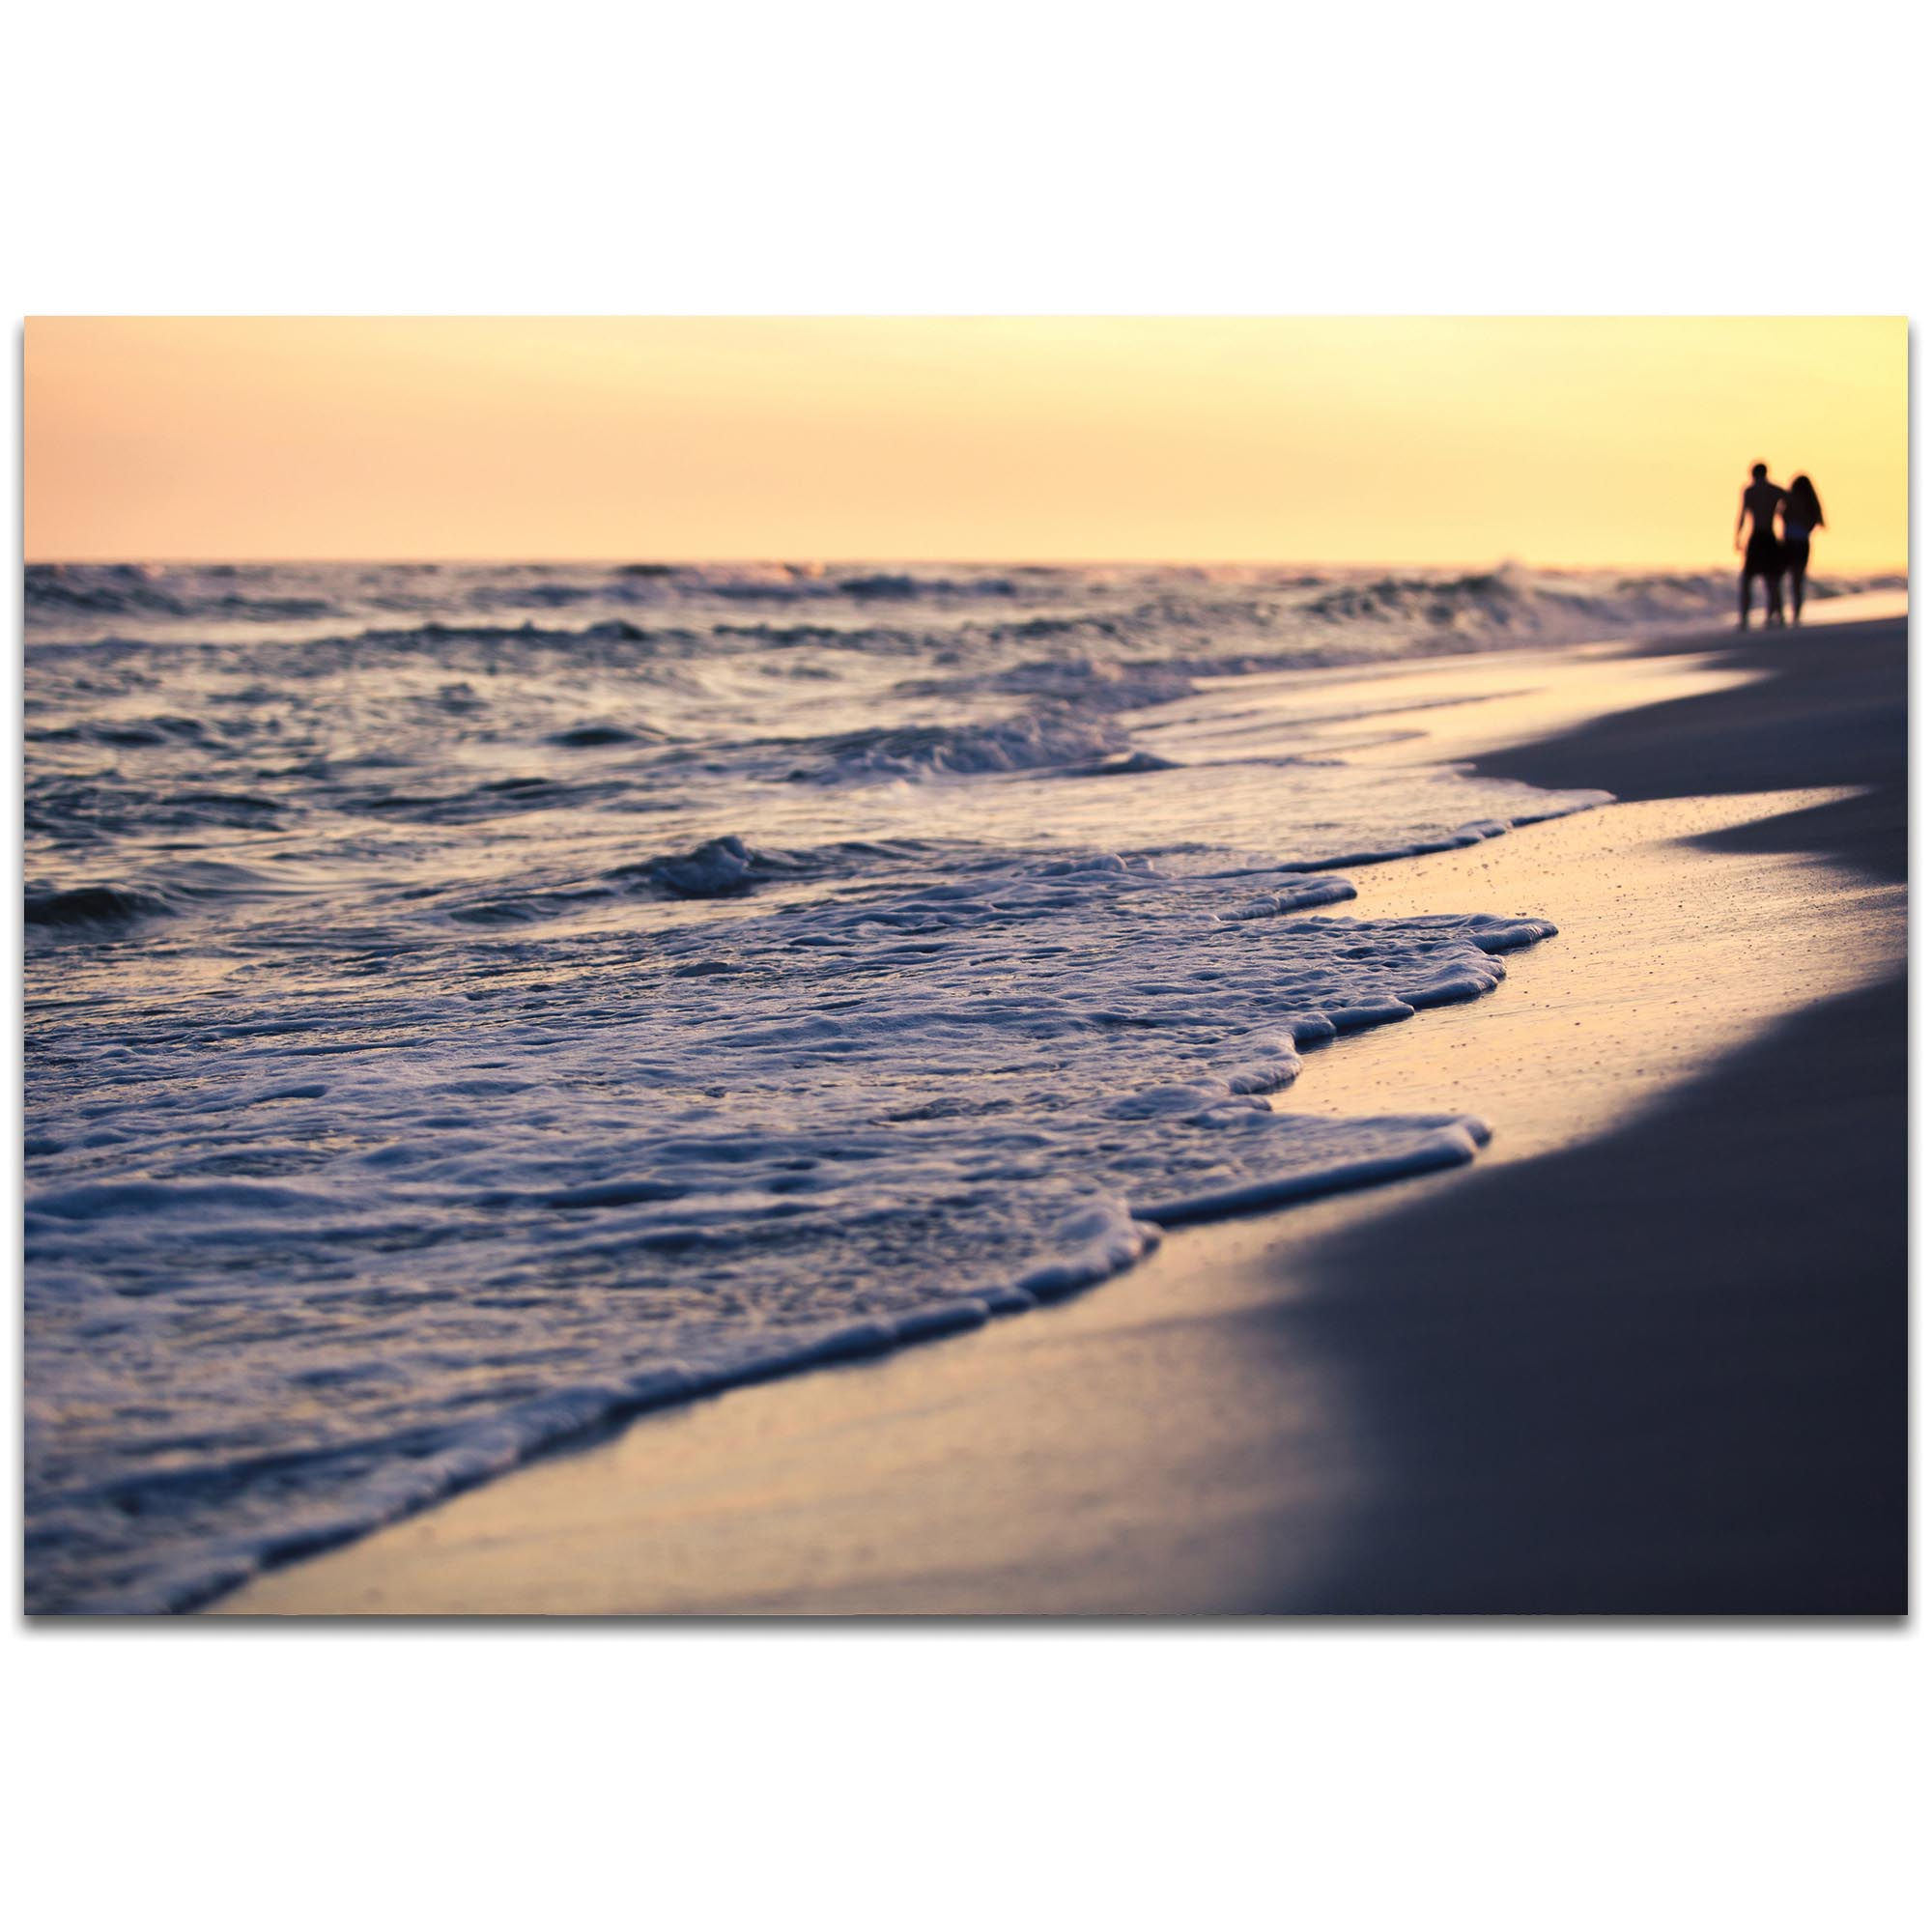 Coastal Wall Art 'Beach Stroll' - Beach Sunset Decor on Metal or Plexiglass